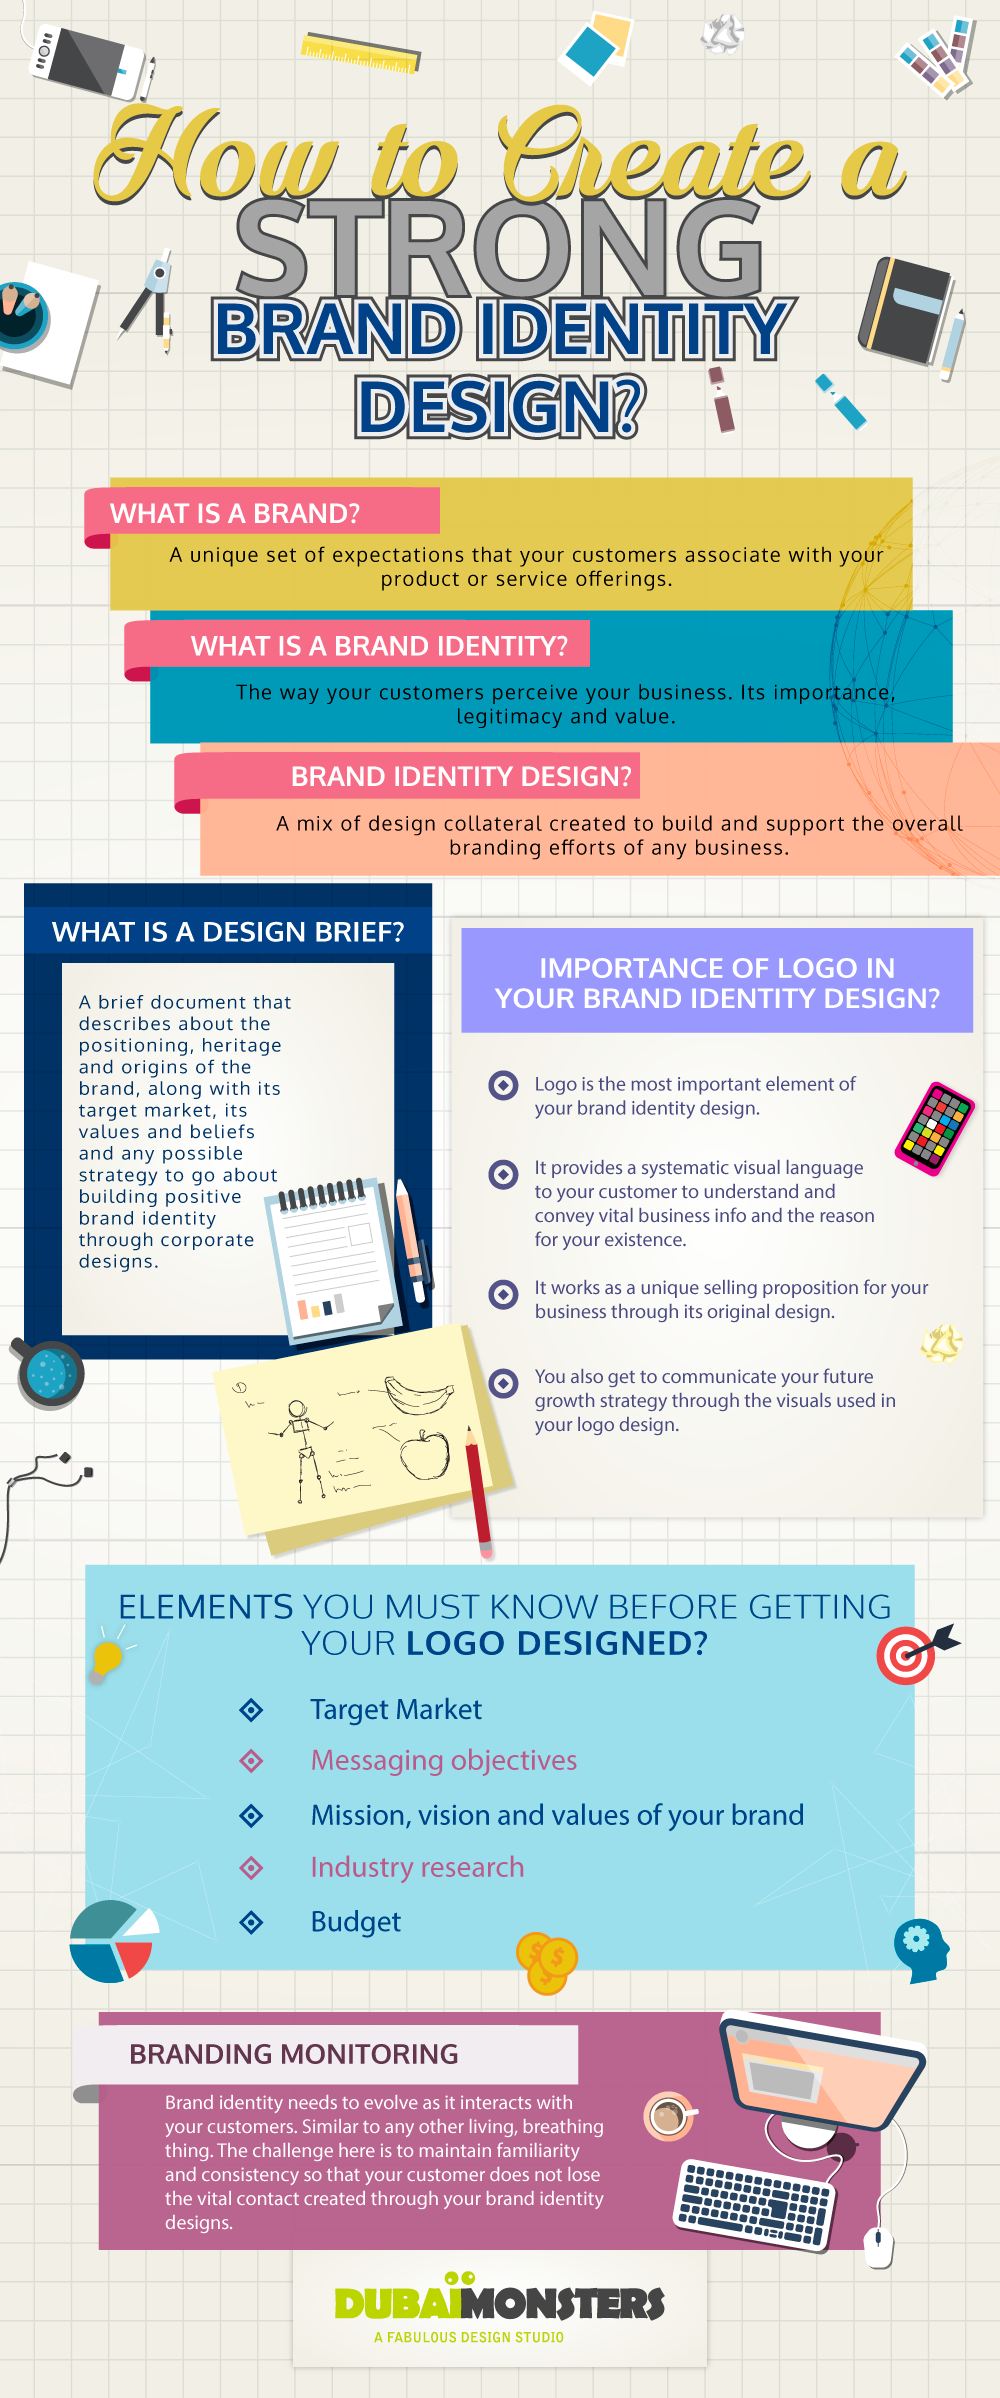 How To Create a Strong Brand Identity Design? #Infographic